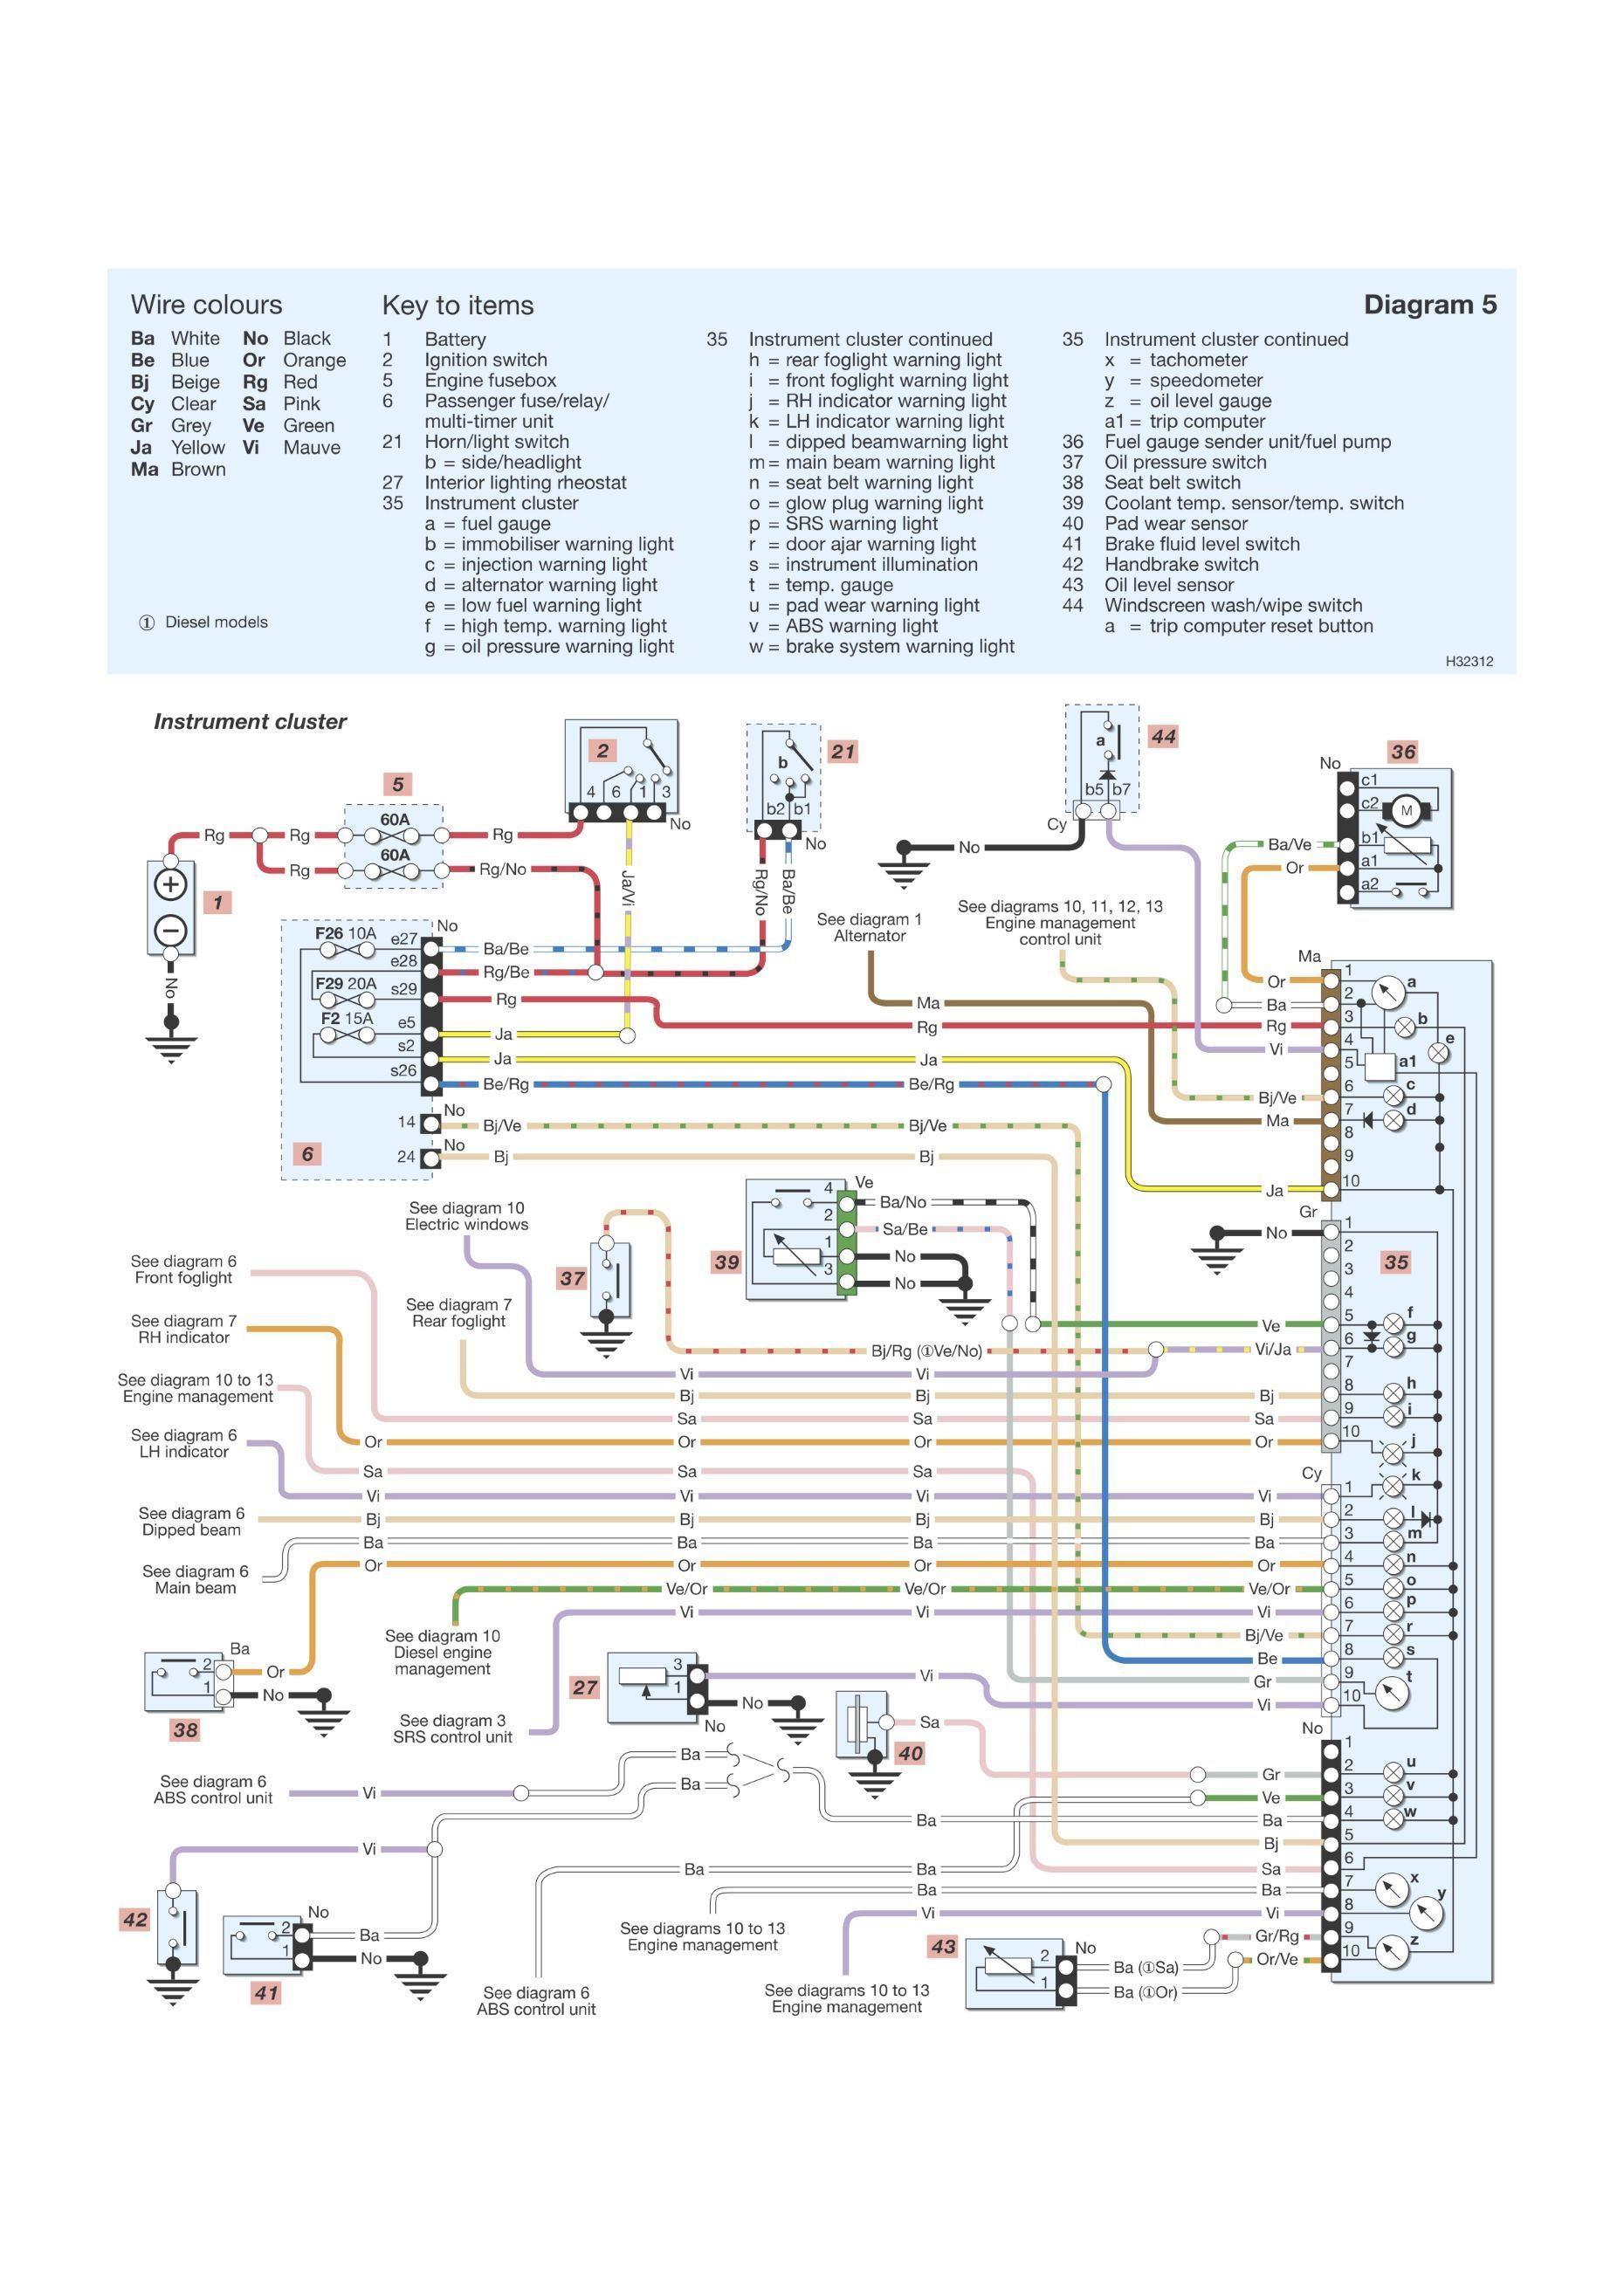 Diagram Renault Koleos Wiring Diagram Full Version Hd Quality Wiring Diagram Solarpaneldiagram Blidetoine Fr